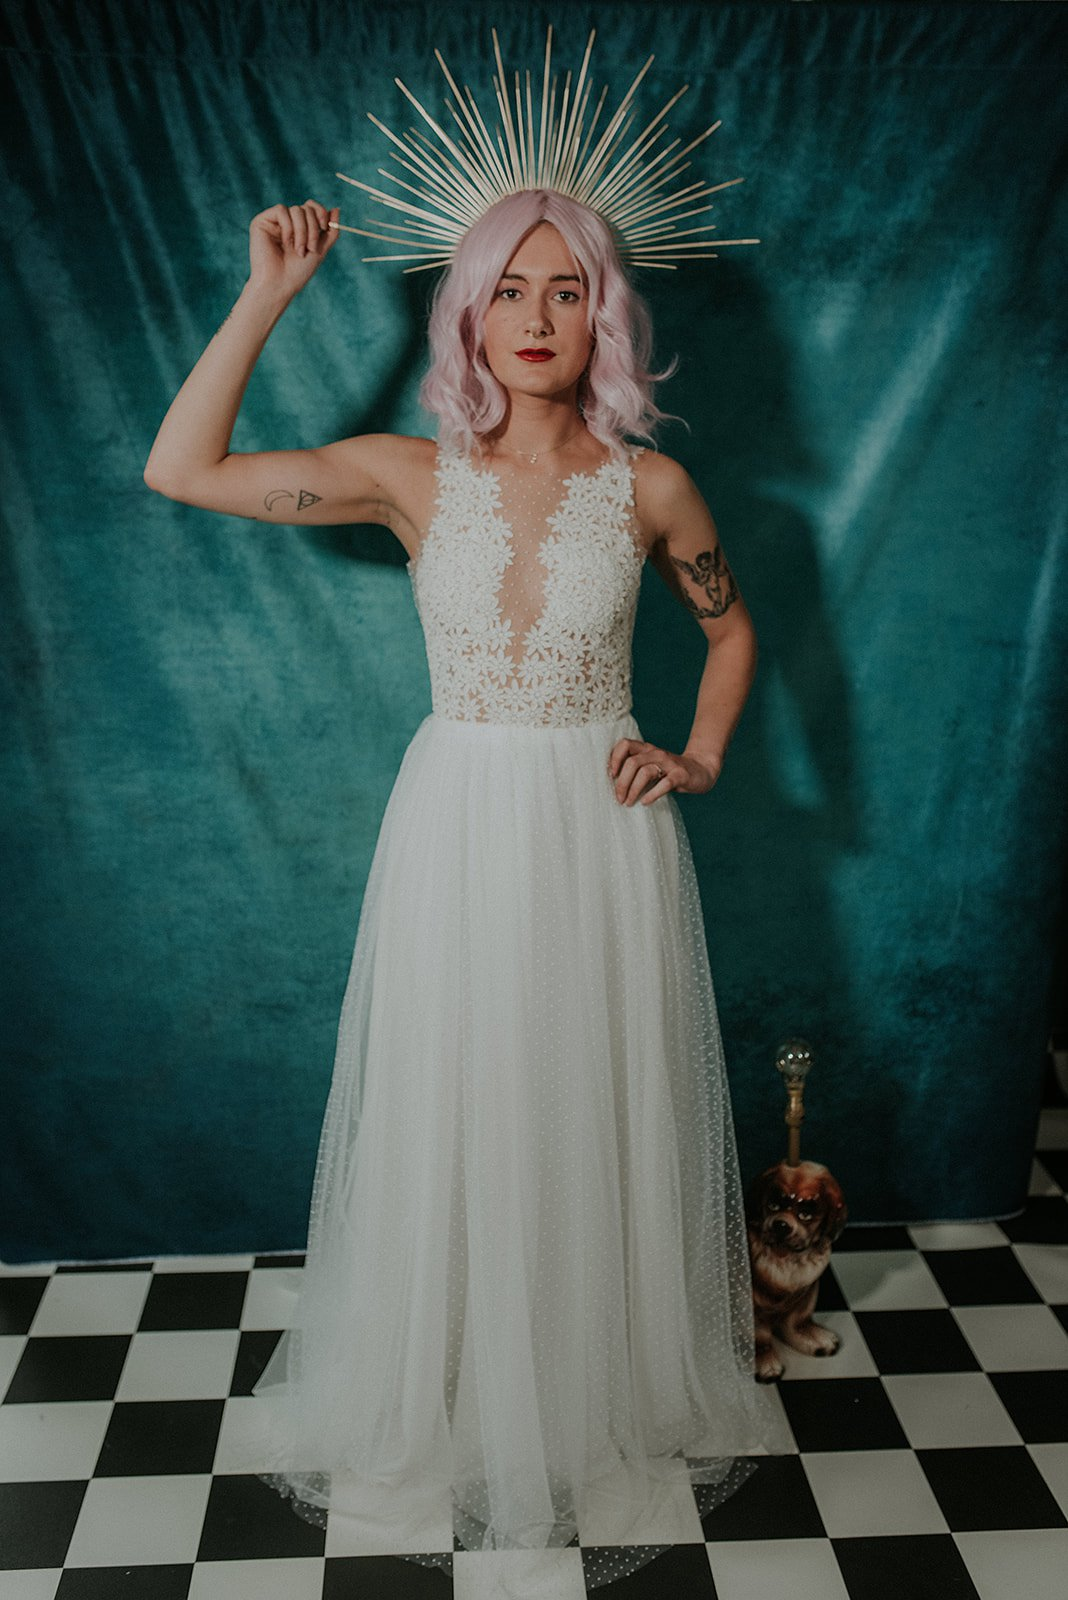 Lucy Cant Dance Cosmic Rodeo Alternative wedding dresses separates Megan Elle Photography 00015.jpg